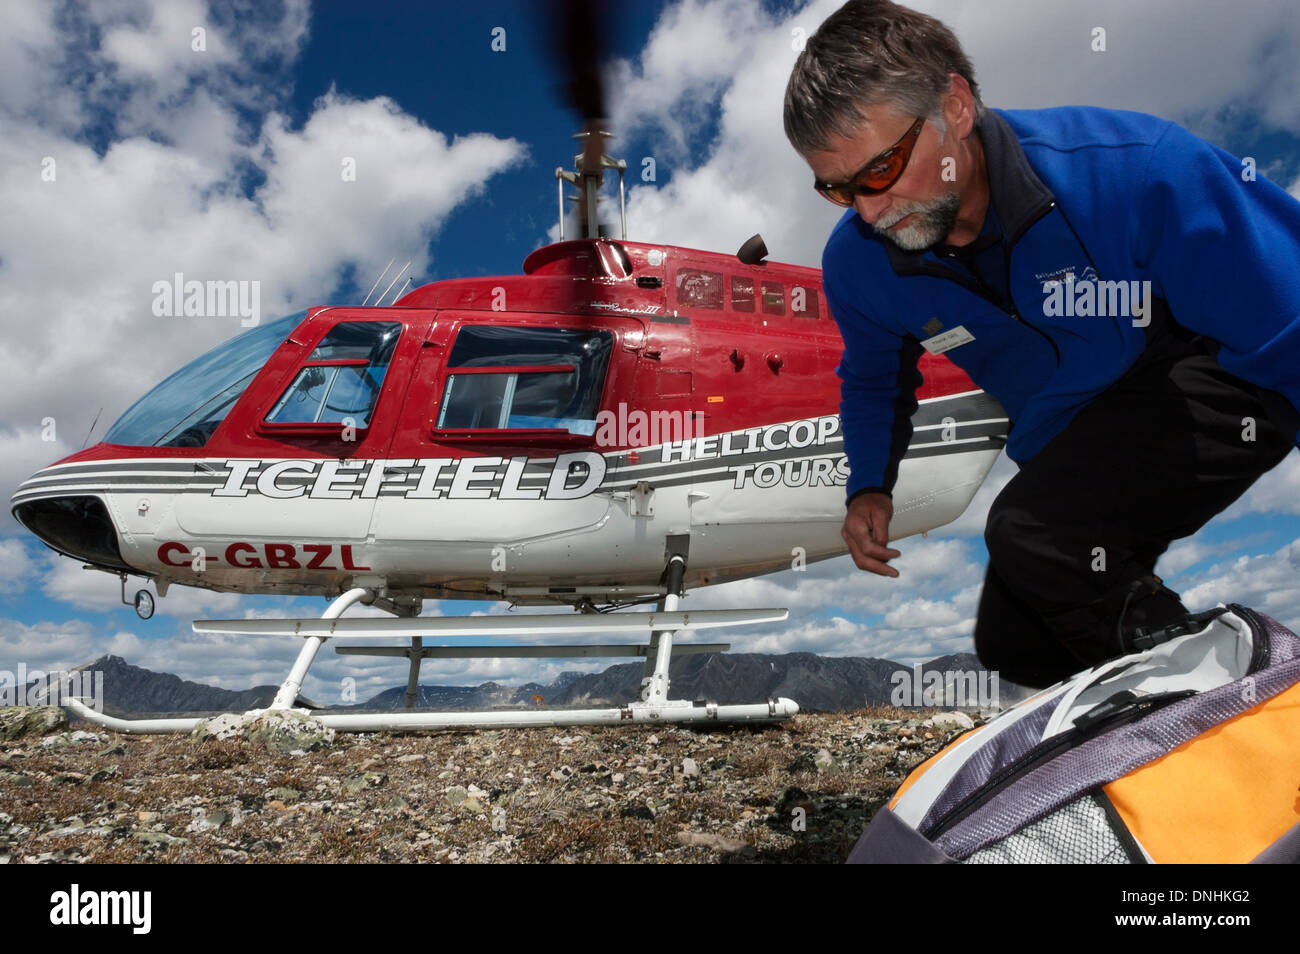 Heli-hiker and helicopter Canadian Rockies Alberta Canada - Stock Image